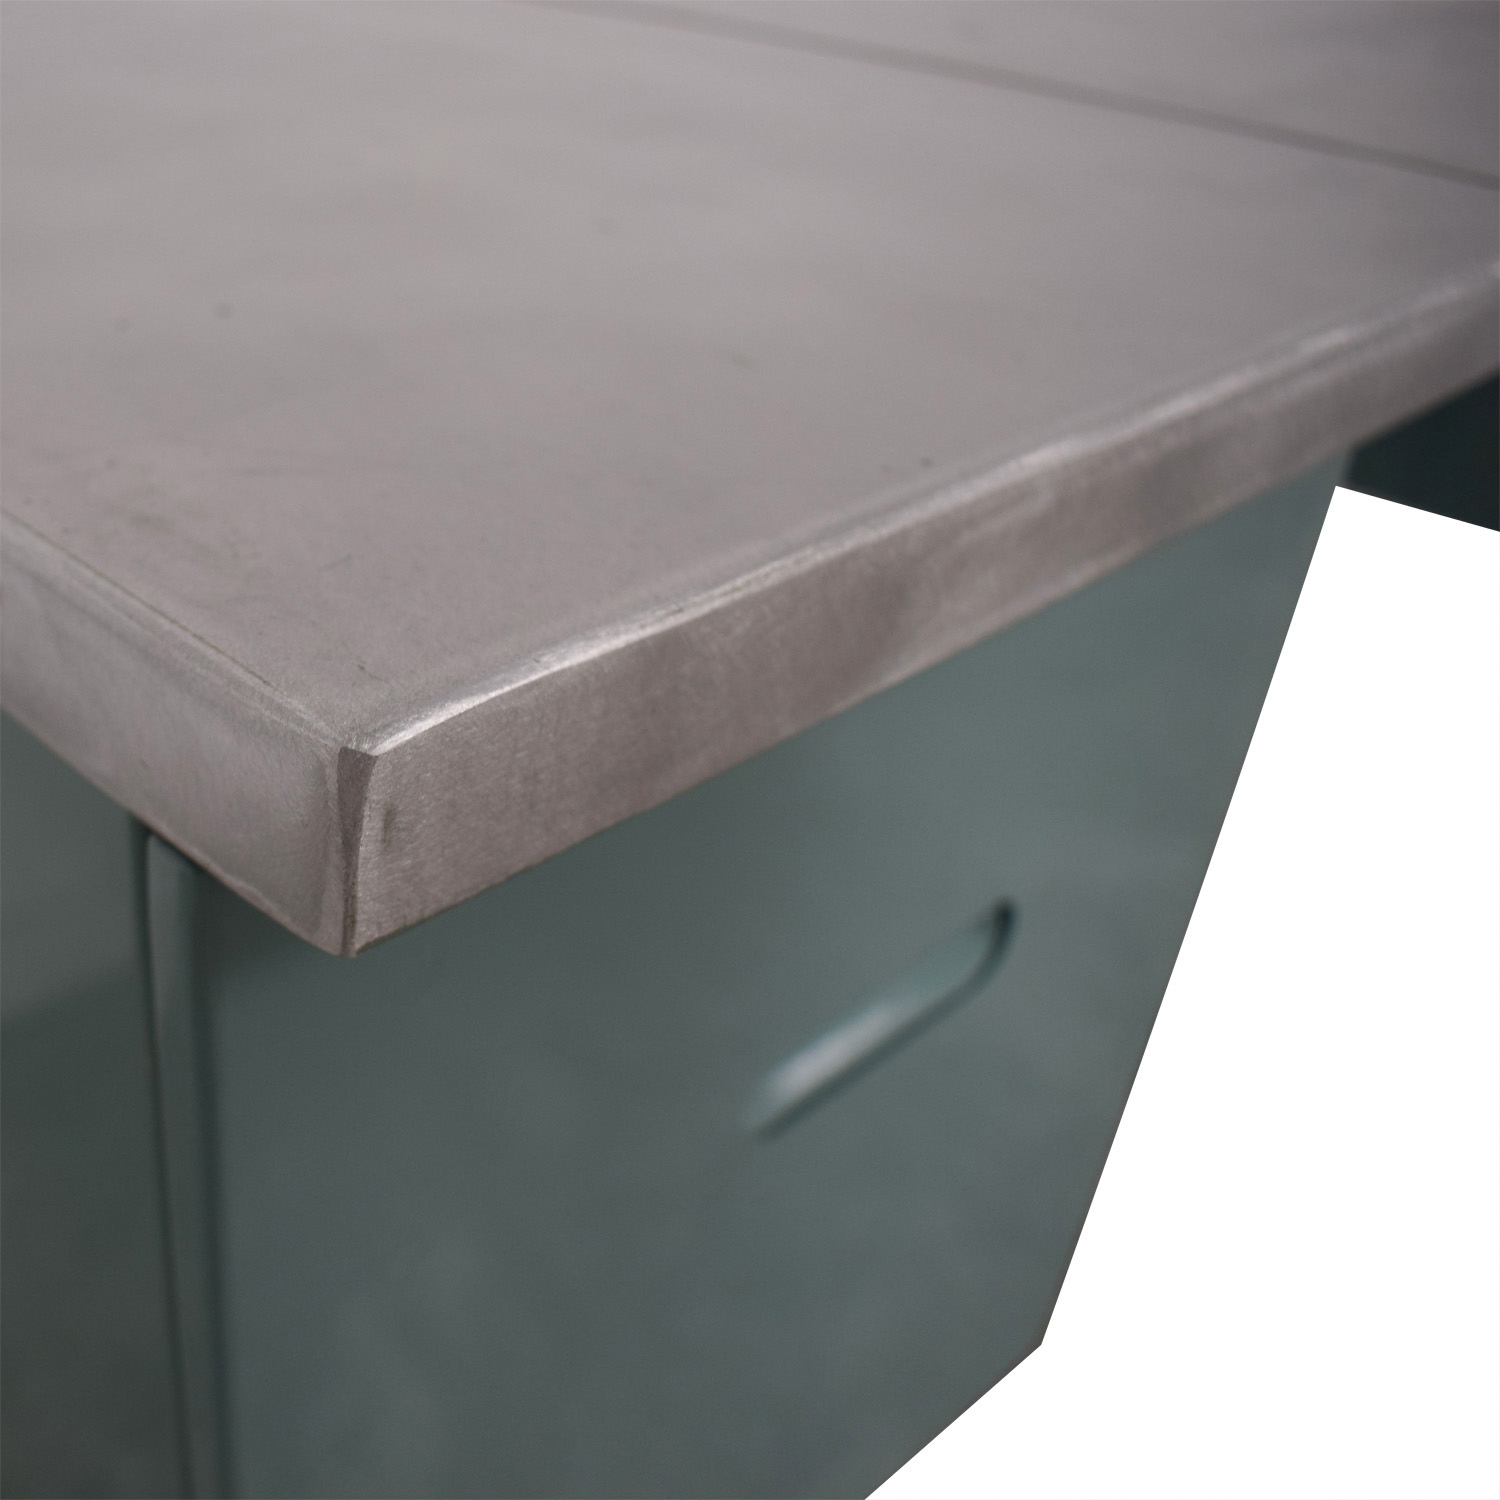 Vintage Steel and Mint Green Collapsible Military Nurses Desk Tables